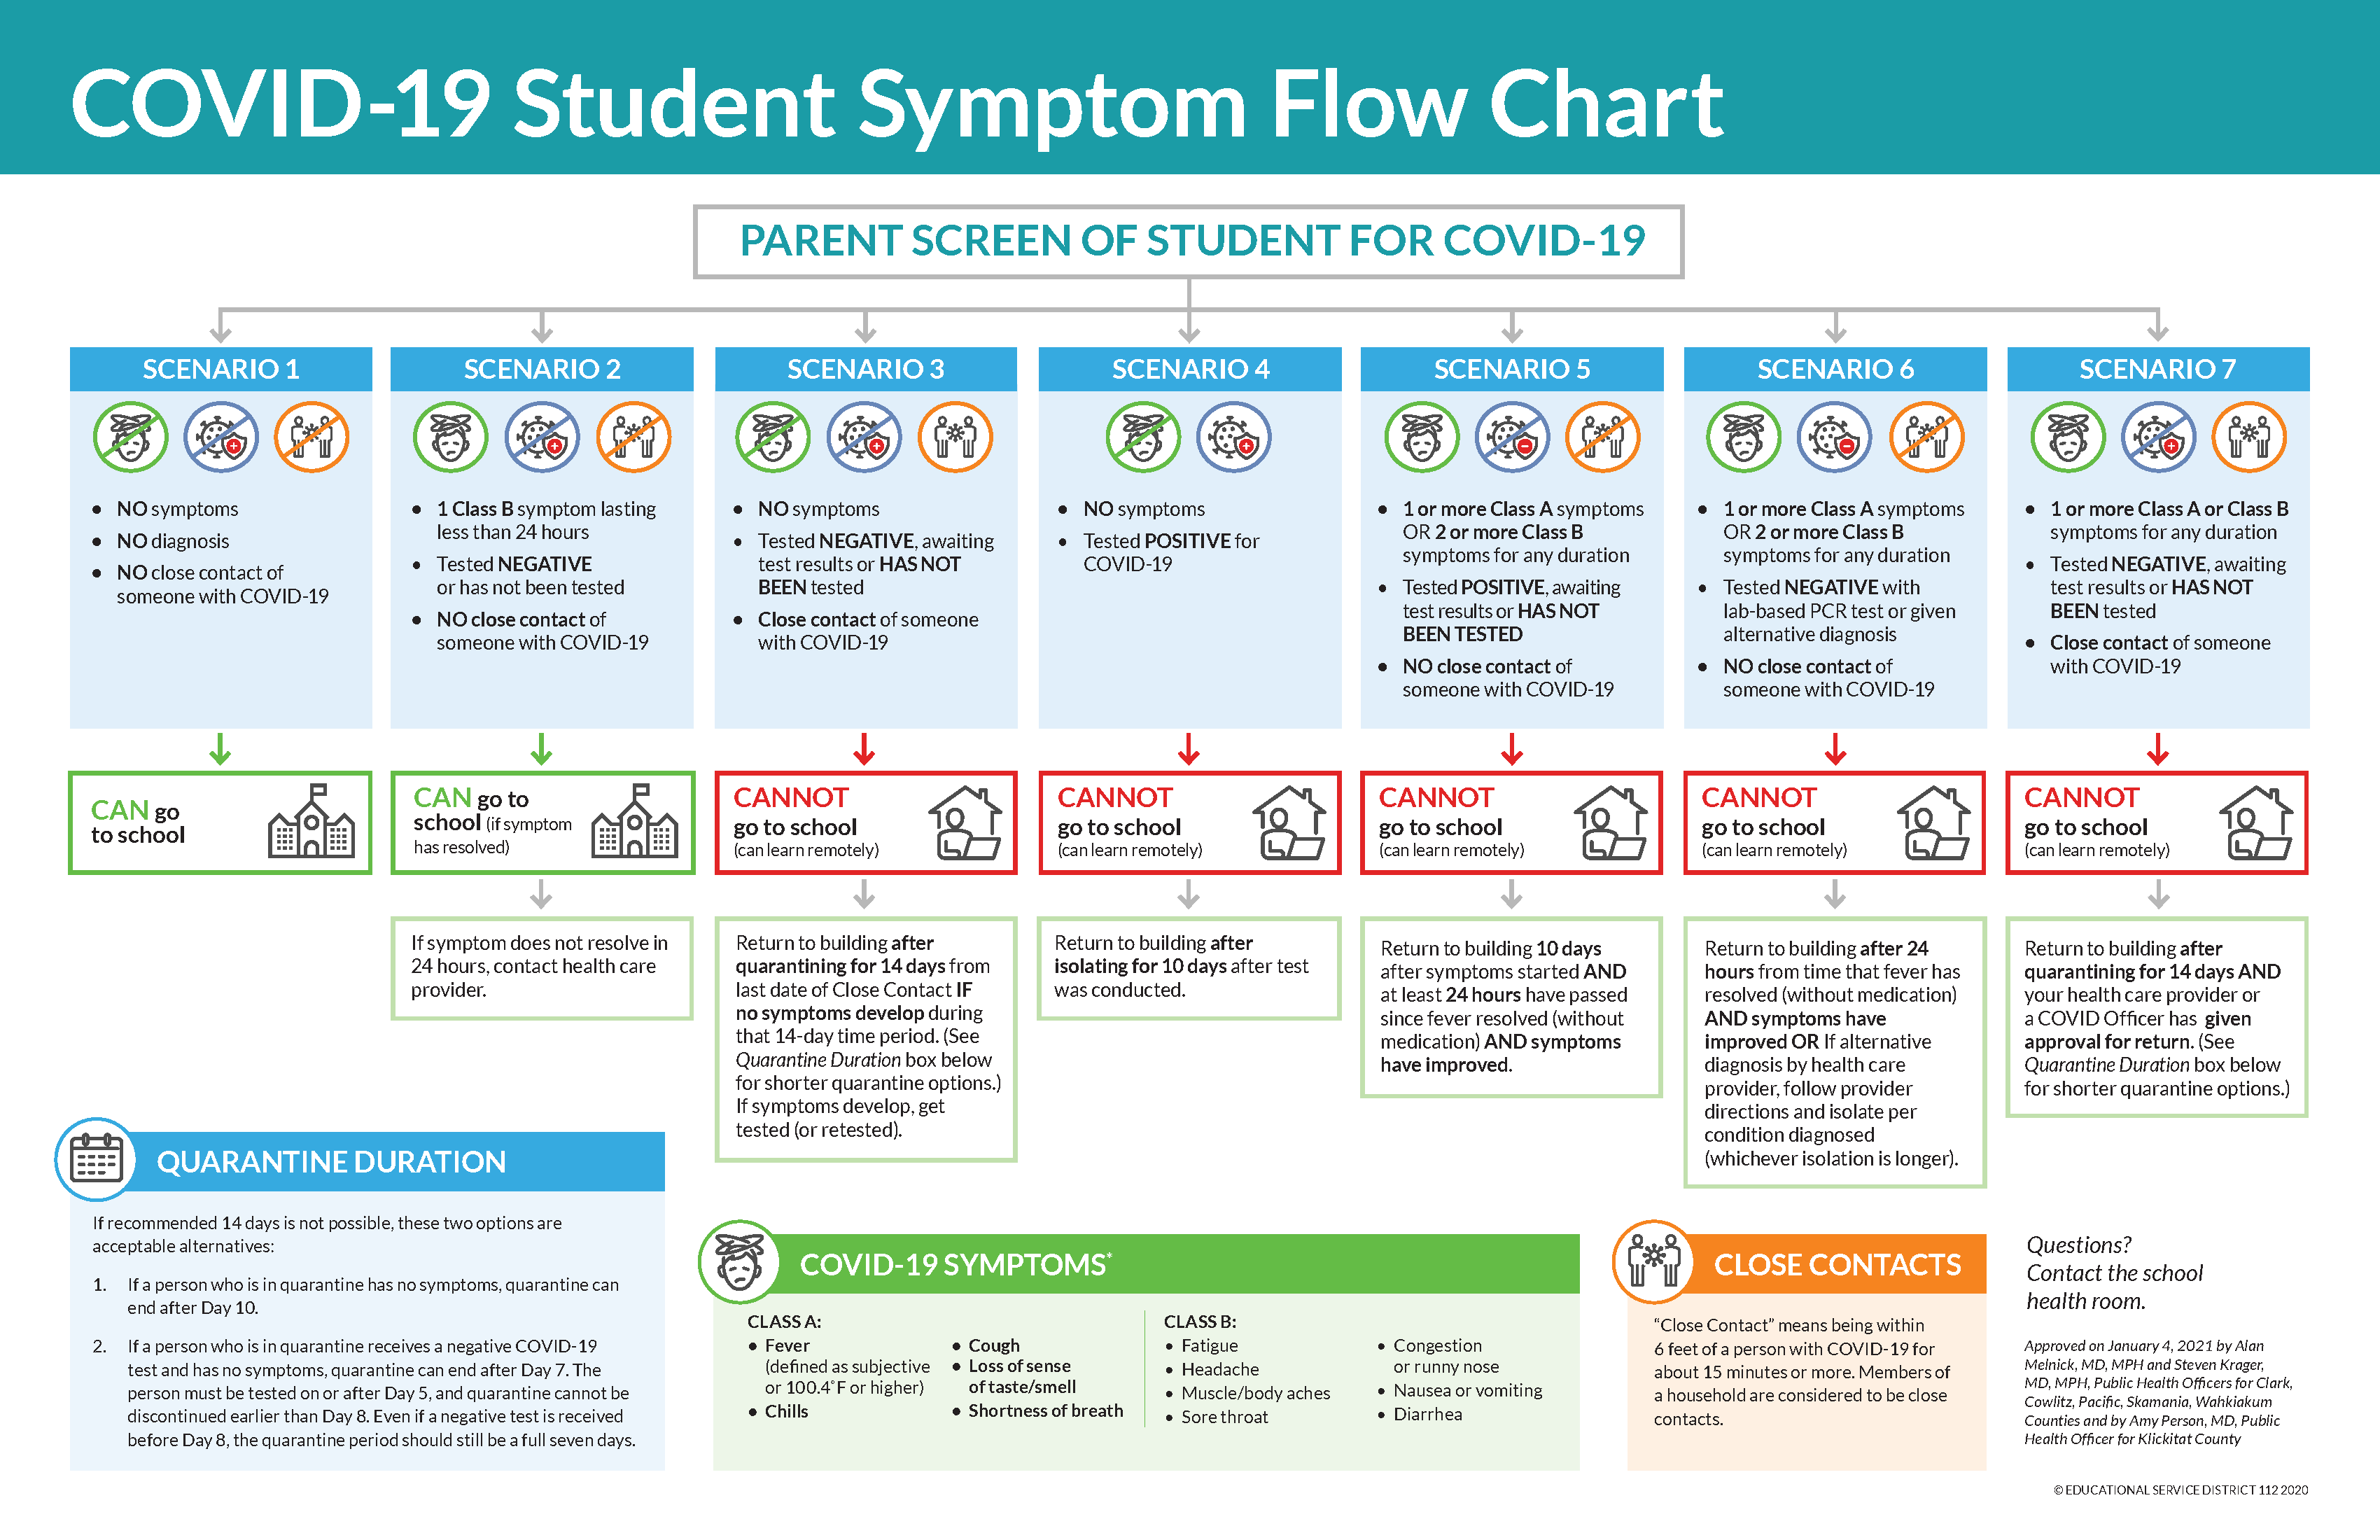 Clark County Flow chart, use link for accessible version